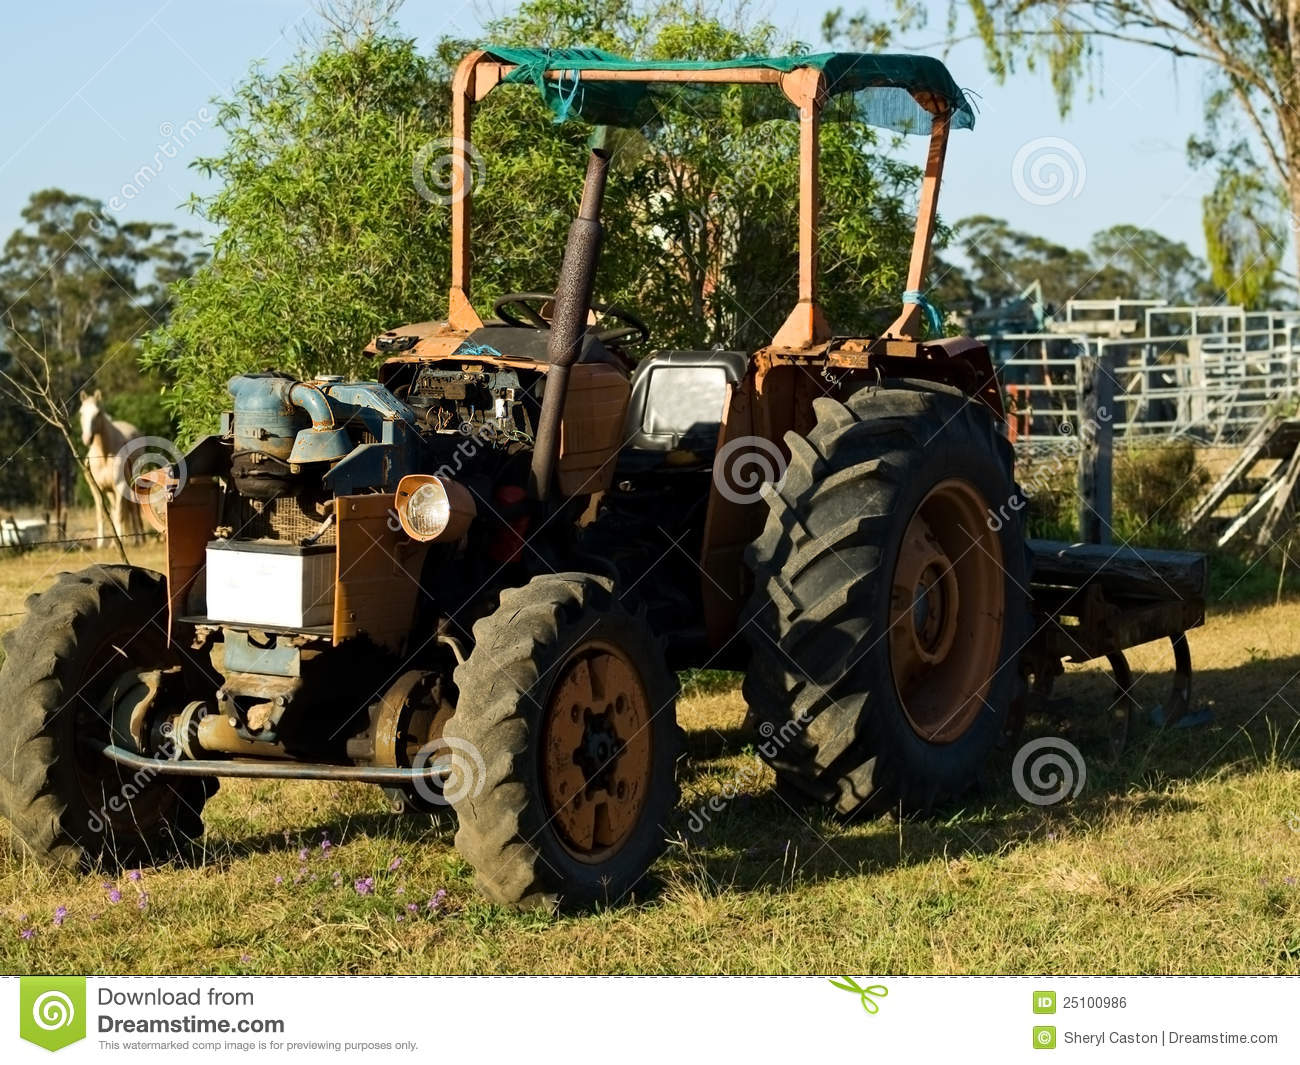 Used Tires Prices >> Vintage Australian Tractor Agriculture Australia Royalty Free Stock Image - Image: 25100986